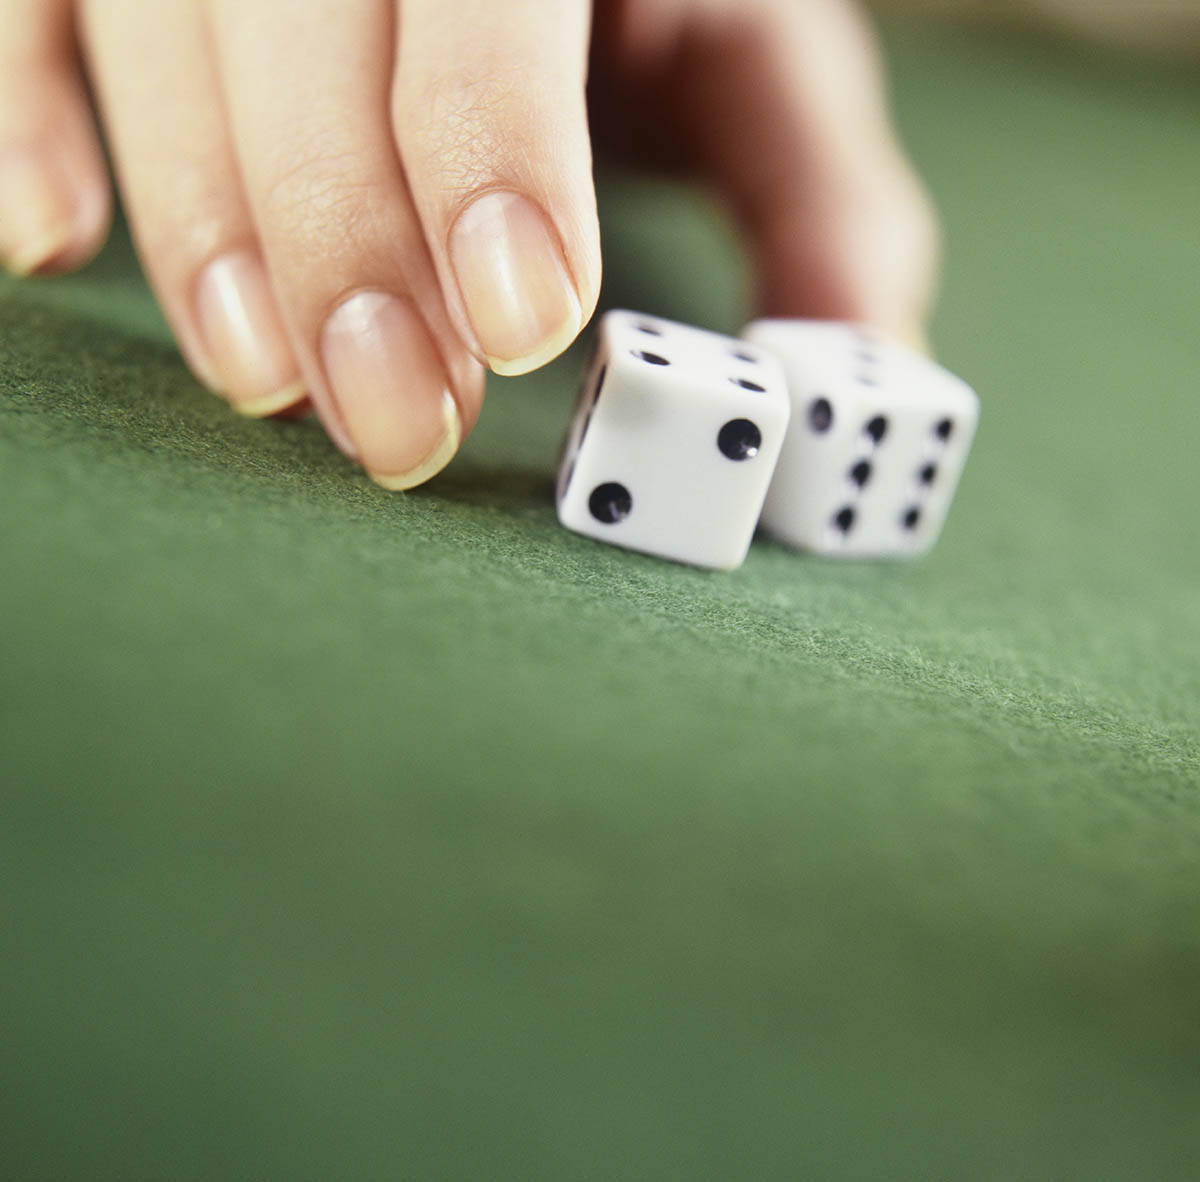 Free stock photo Woman's hand rolling dice